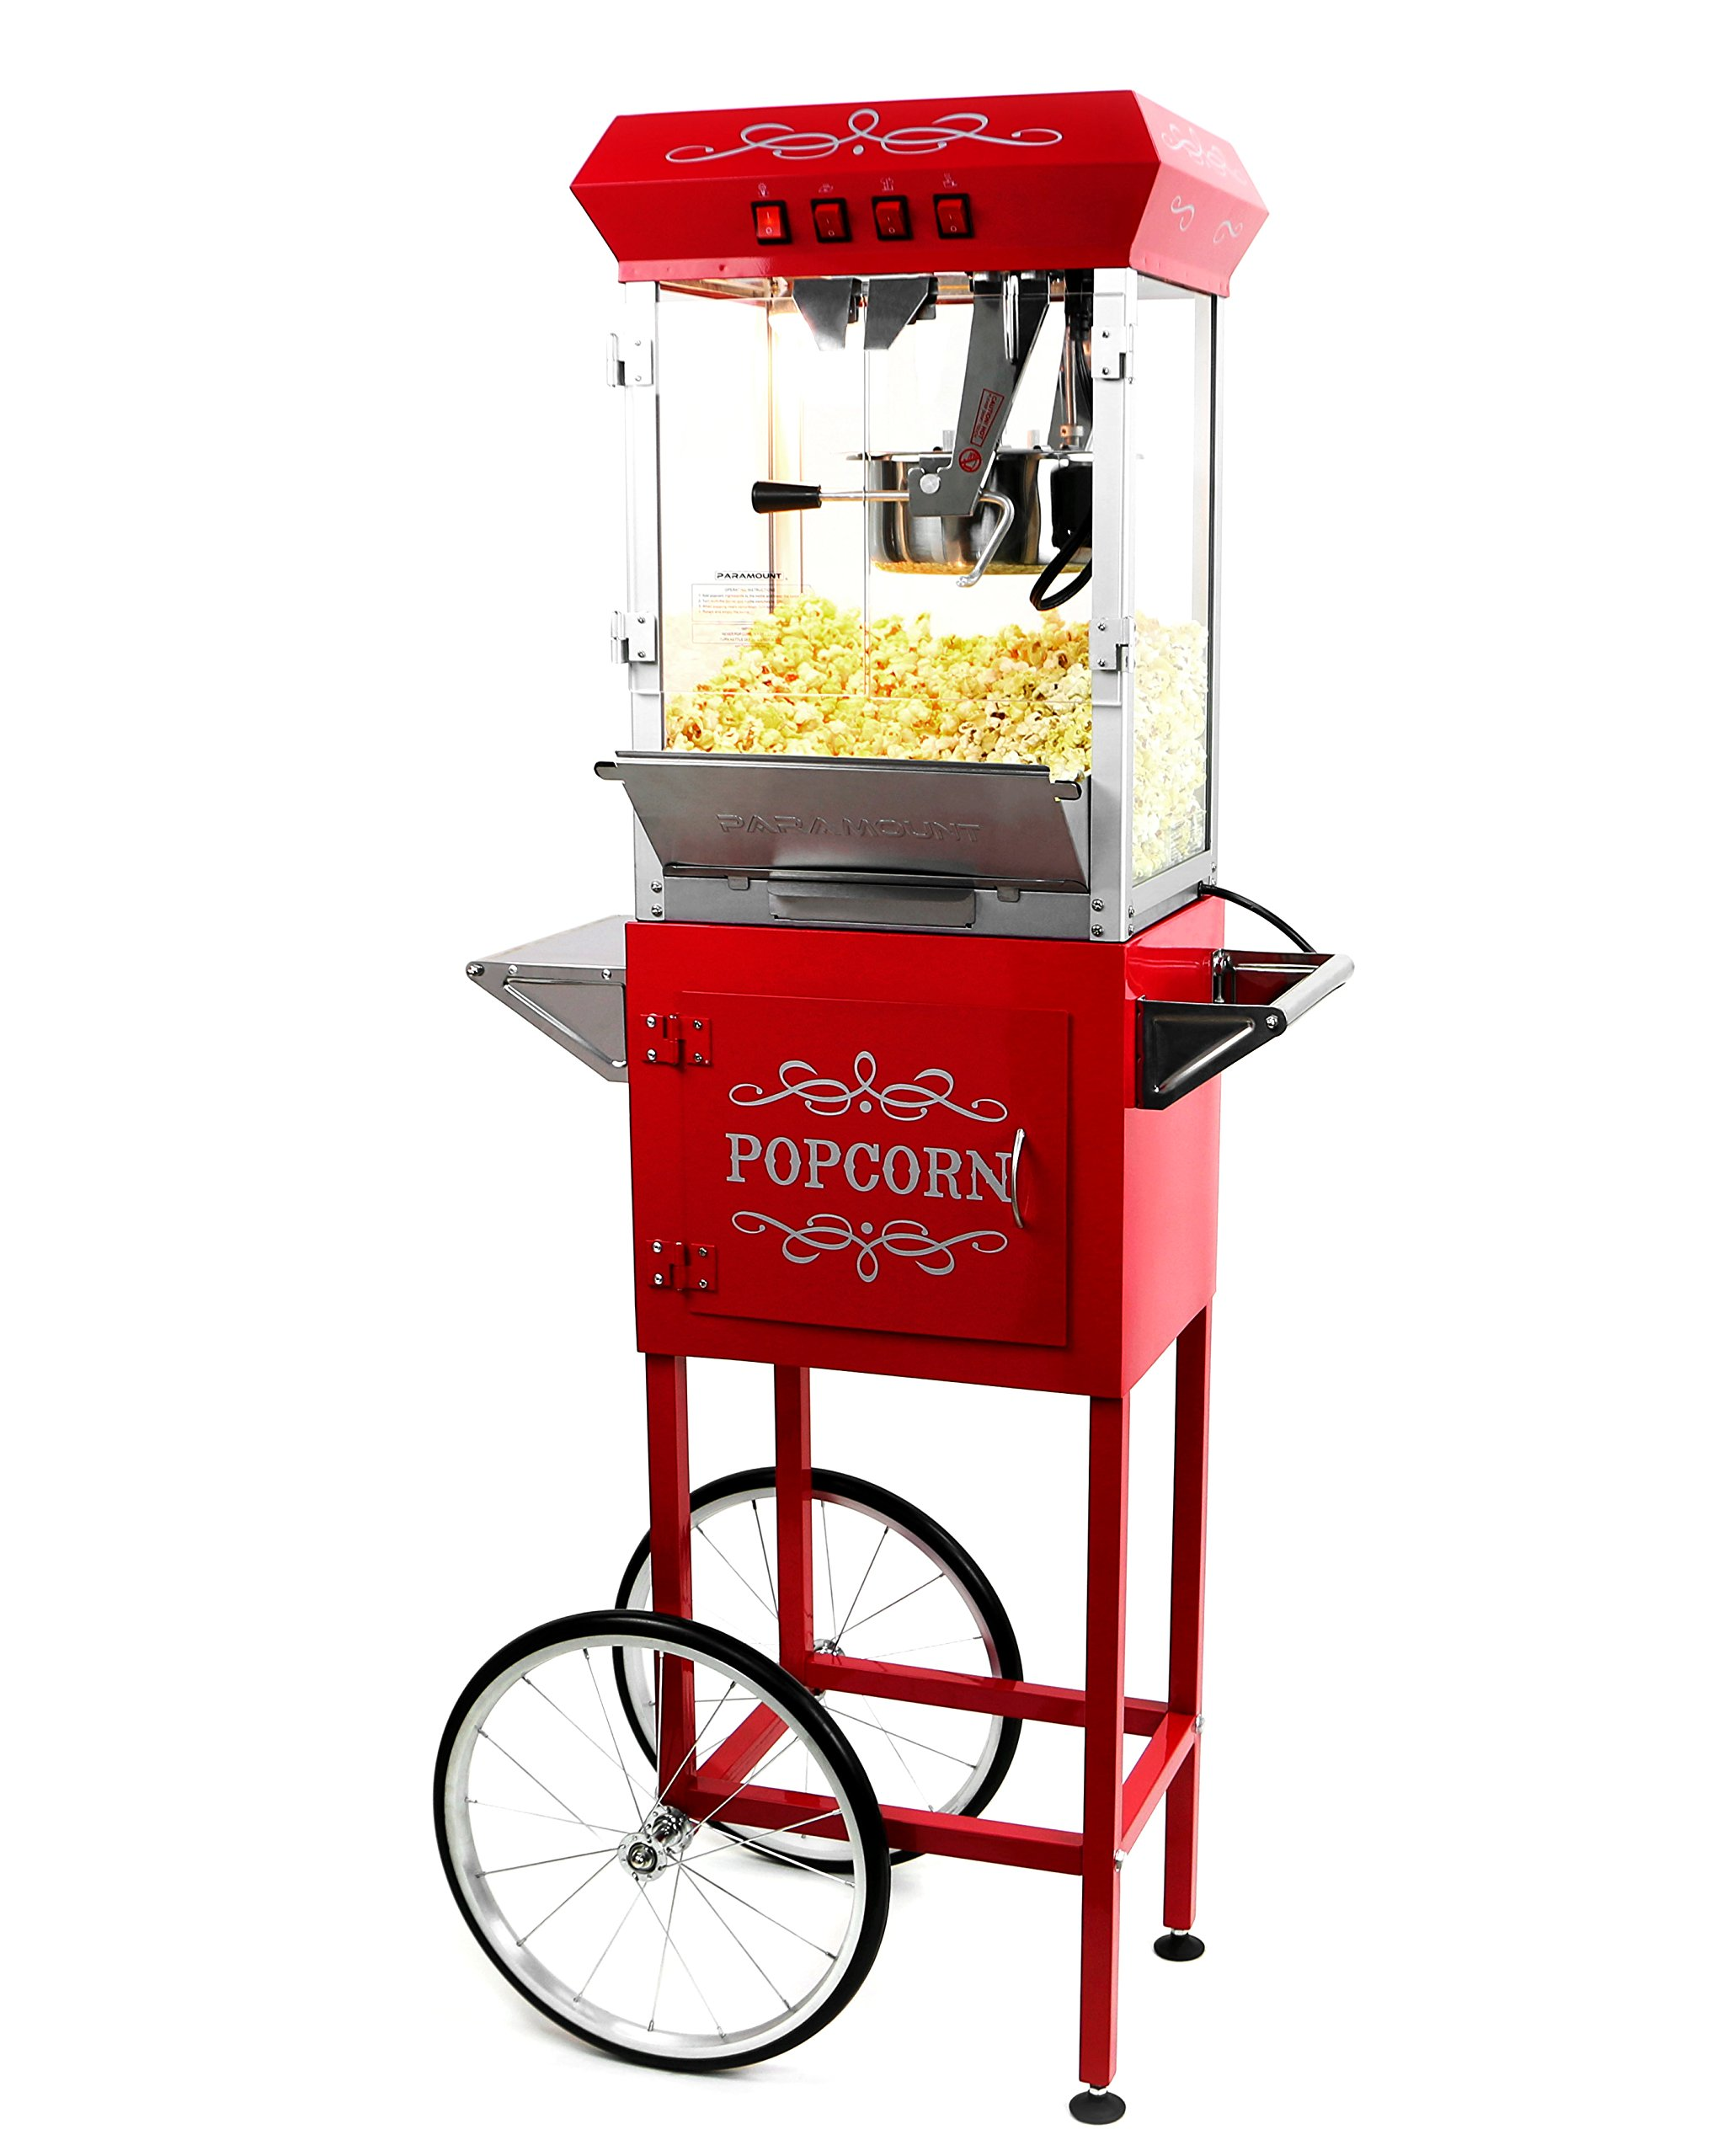 Paramount 8oz Popcorn Maker Machine & Cart - New Upgraded Feature-Rich 8 oz Hot Oil Popper [Color: Red]